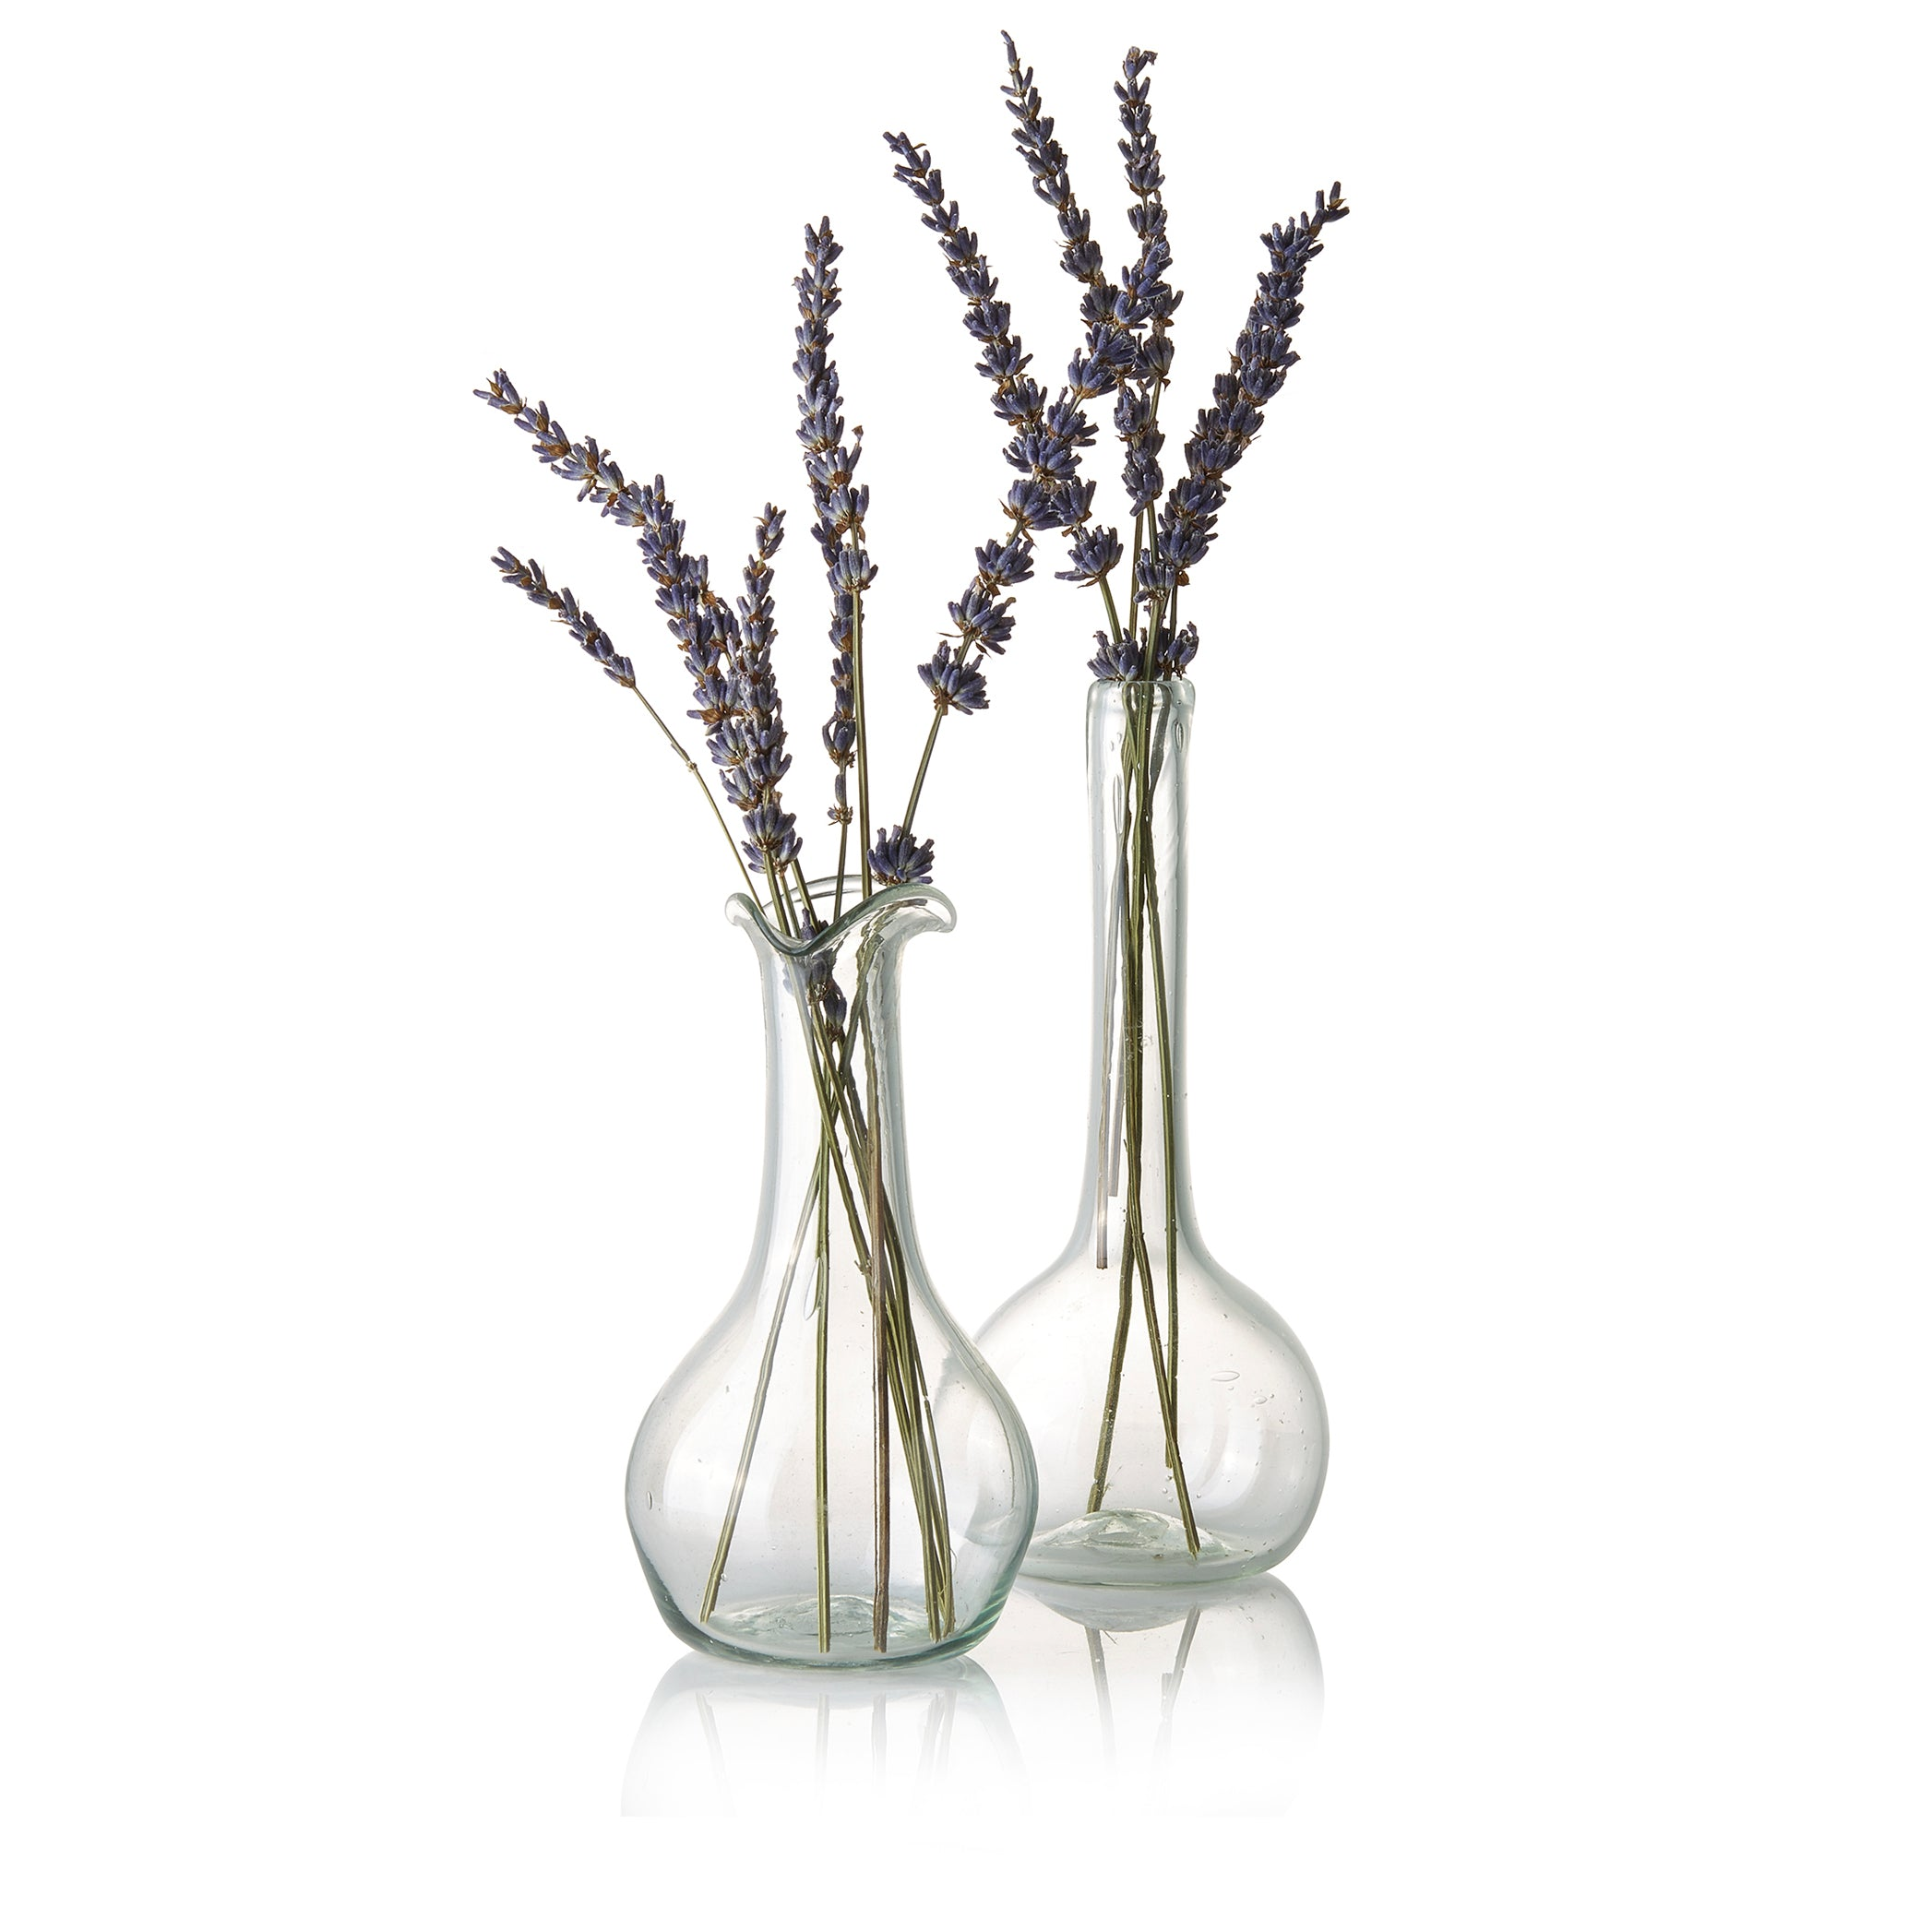 Handblown Glass Single Flower Vase with Long Neck, 19cm